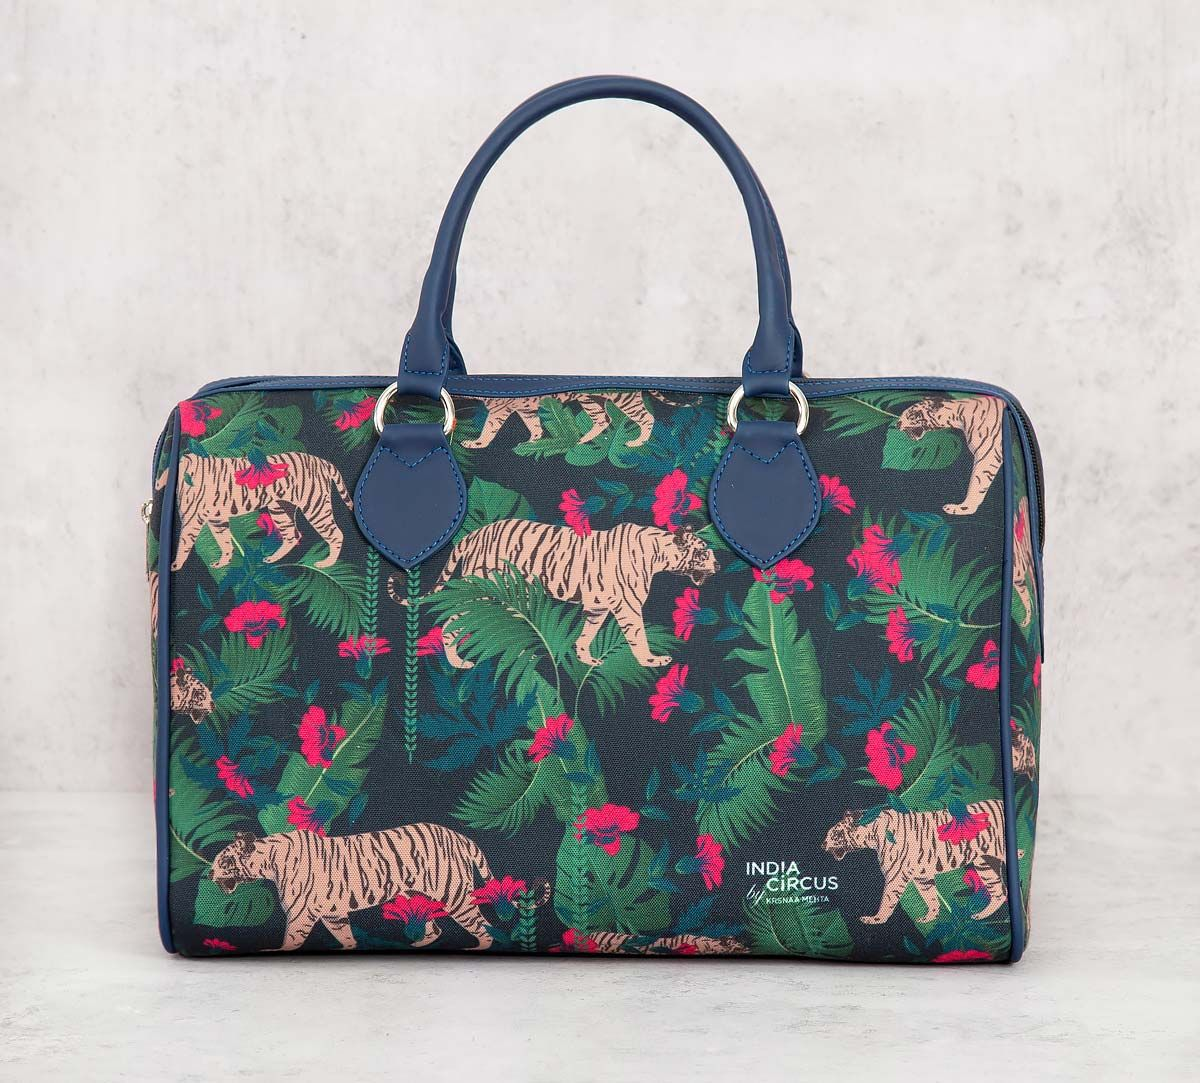 India Circus Tropical Tiger Duffle Bag